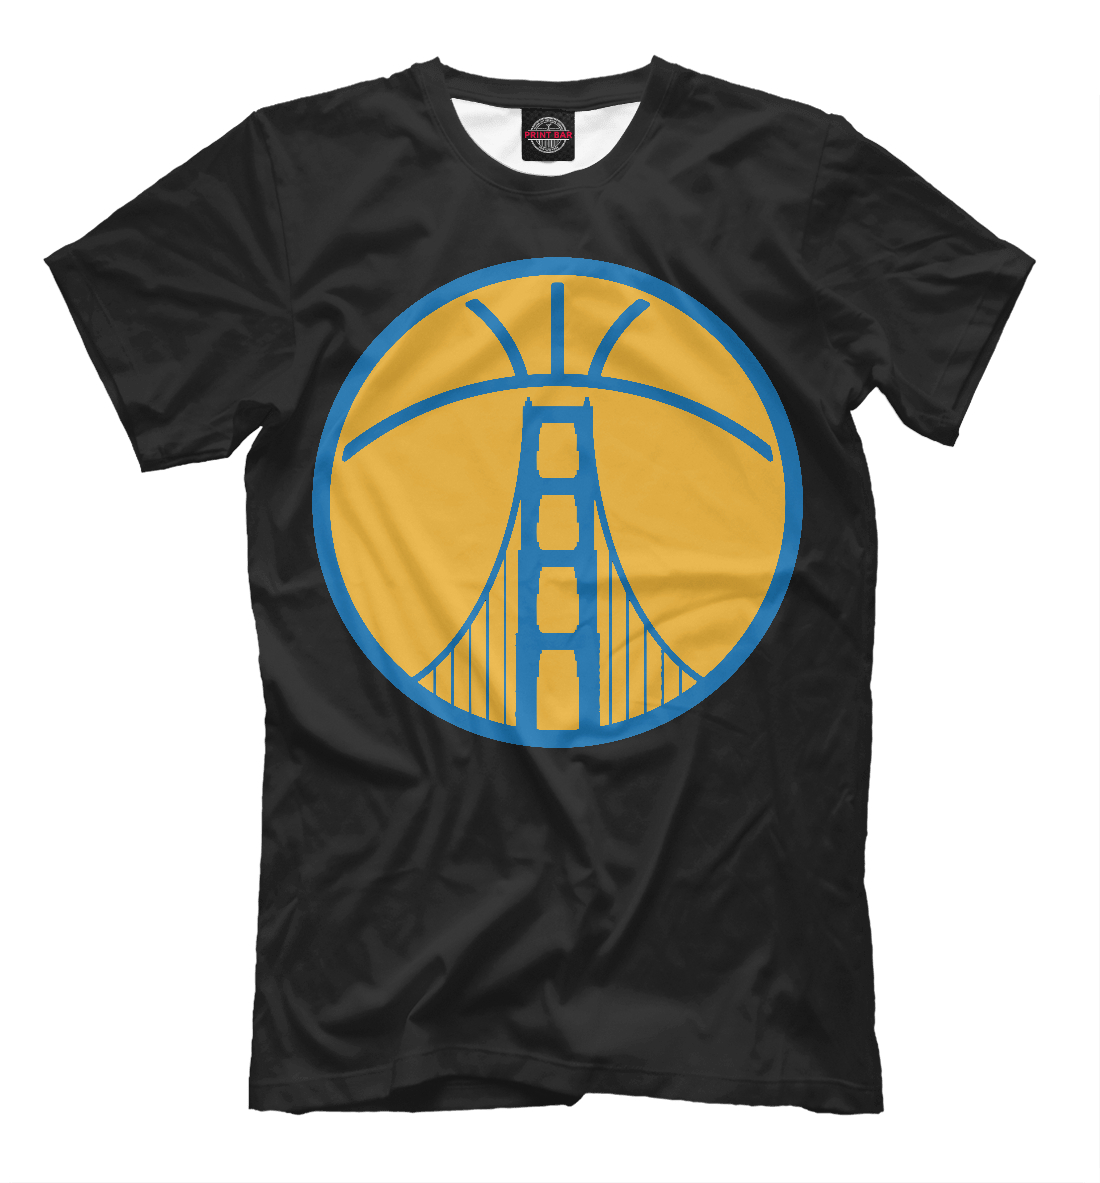 Купить Golden State Warriors, Printbar, Футболки, NBA-619471-fut-2